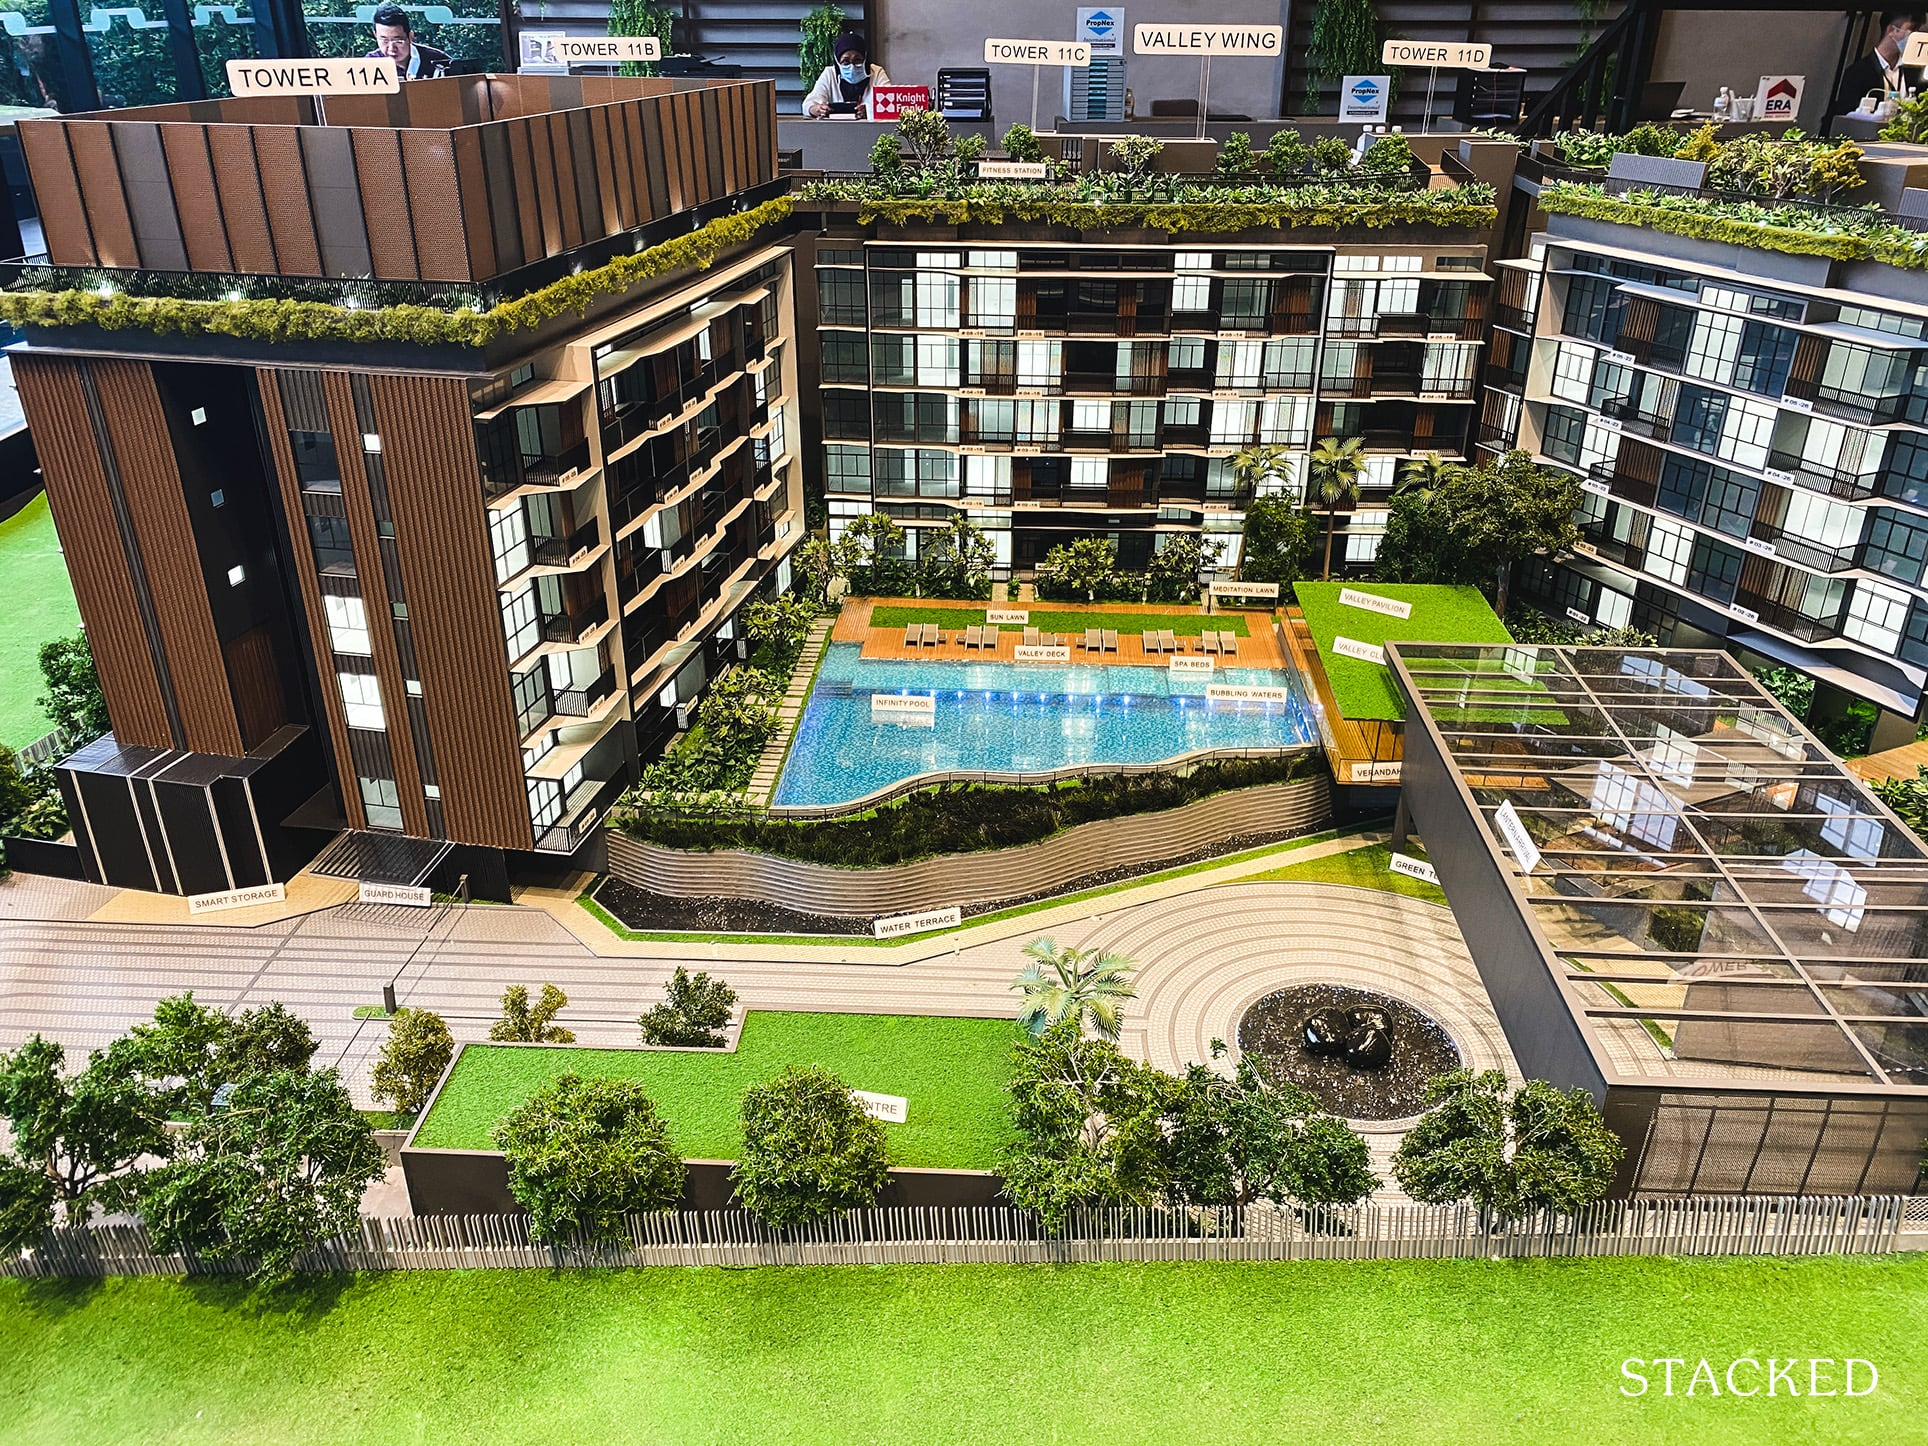 daintree residence showflat model